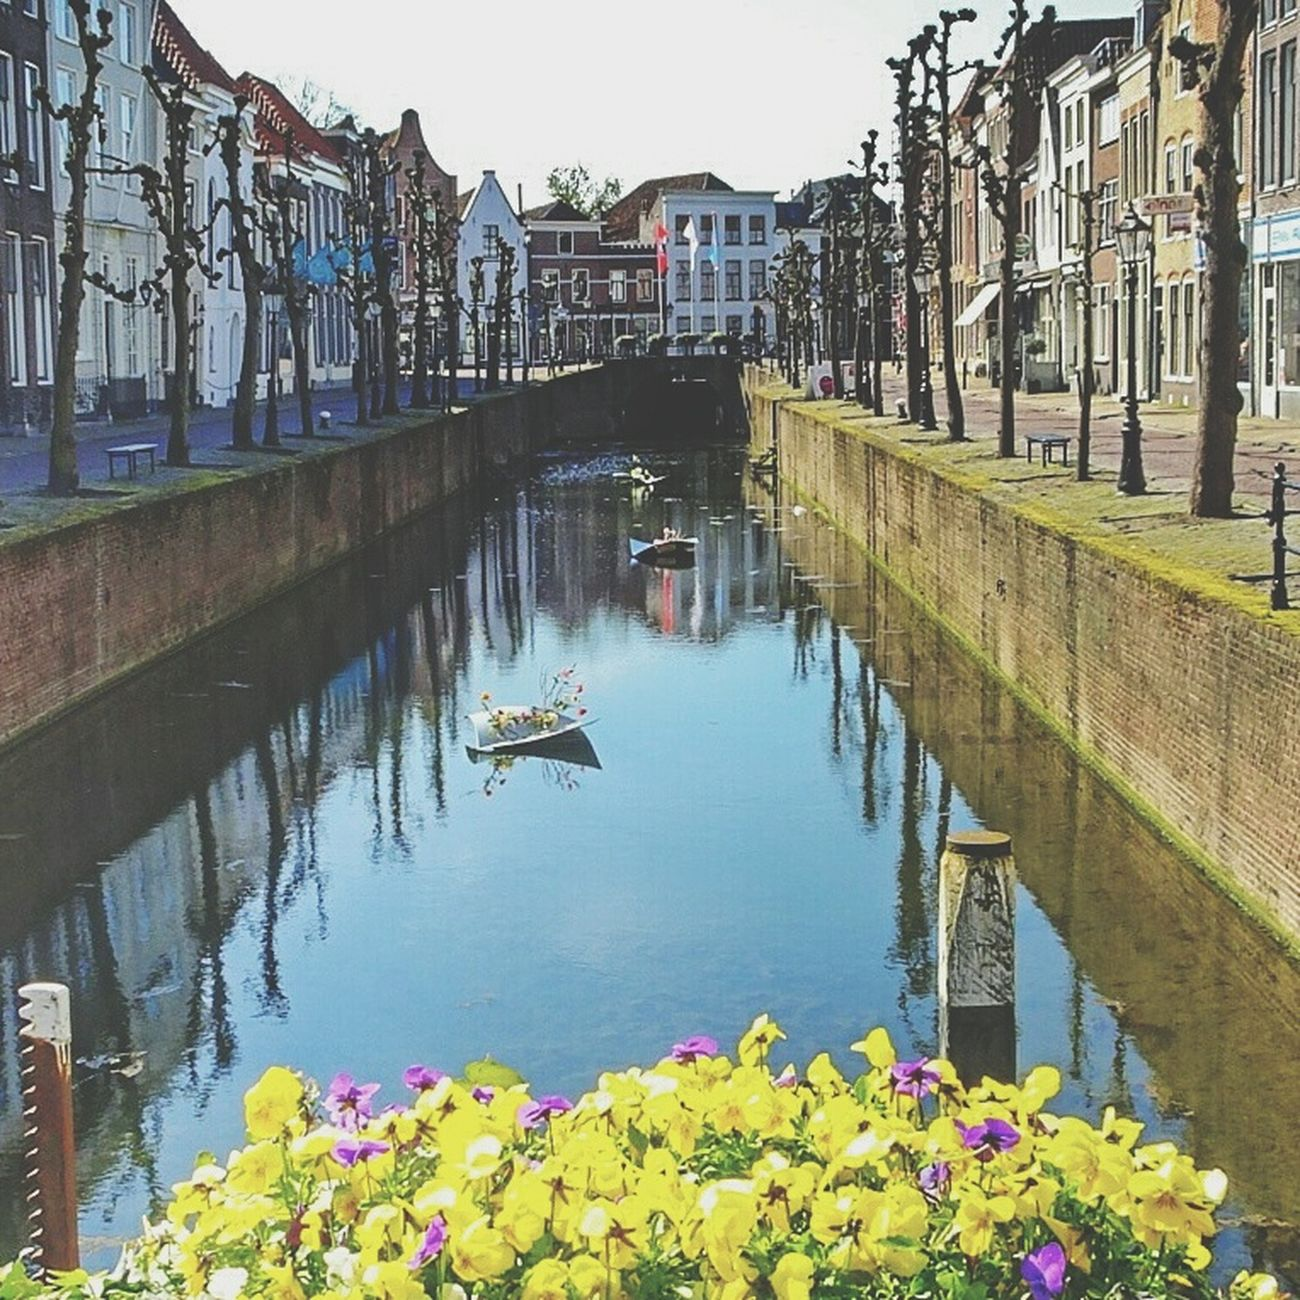 Canal Waterbrilliance Taking Photos Historical Buildings Enjoying Life Reflections In The Water Beautiful Flowers